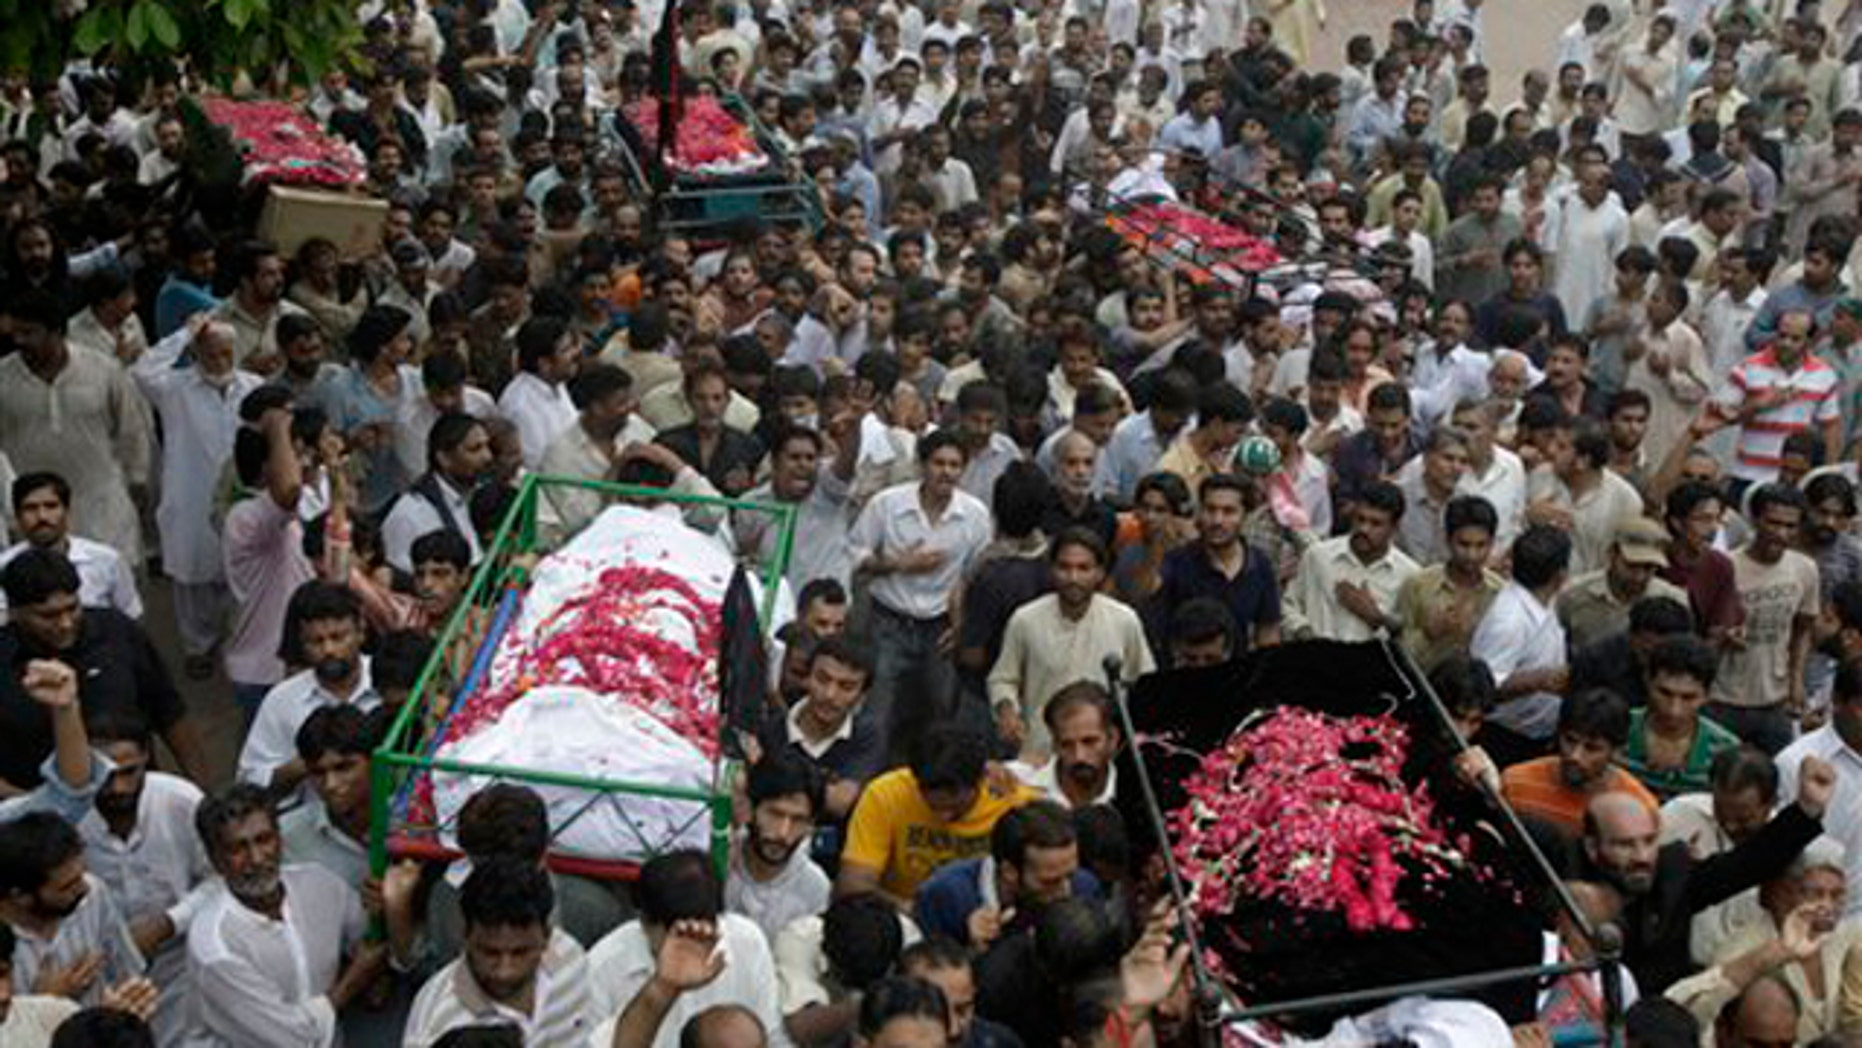 Sept. 2: Mourners carry the dead bodies of those killed in bomb blasts for burial in Lahore, Pakistan. Thousands of Shiite Muslims, thumping their chests and crying, mourned at funeral prayers for victims of the triple bombing that heaped more tragedy on Pakistan, which is already struggling to cope with devastating floods.